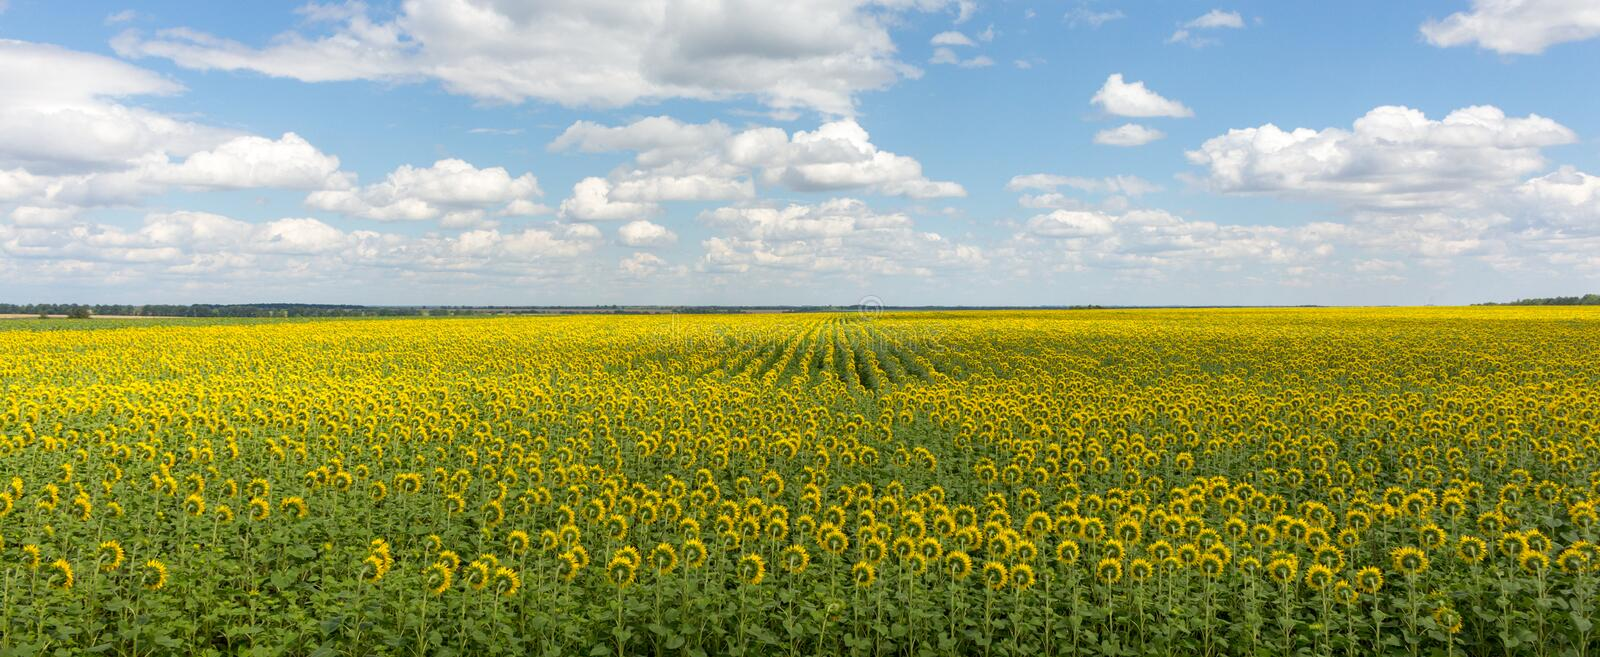 Field of sunflowers panorama landscape. Bright blooming sunflowers meadow against blue sky with clouds. Sunny summer landscape. royalty free stock photos